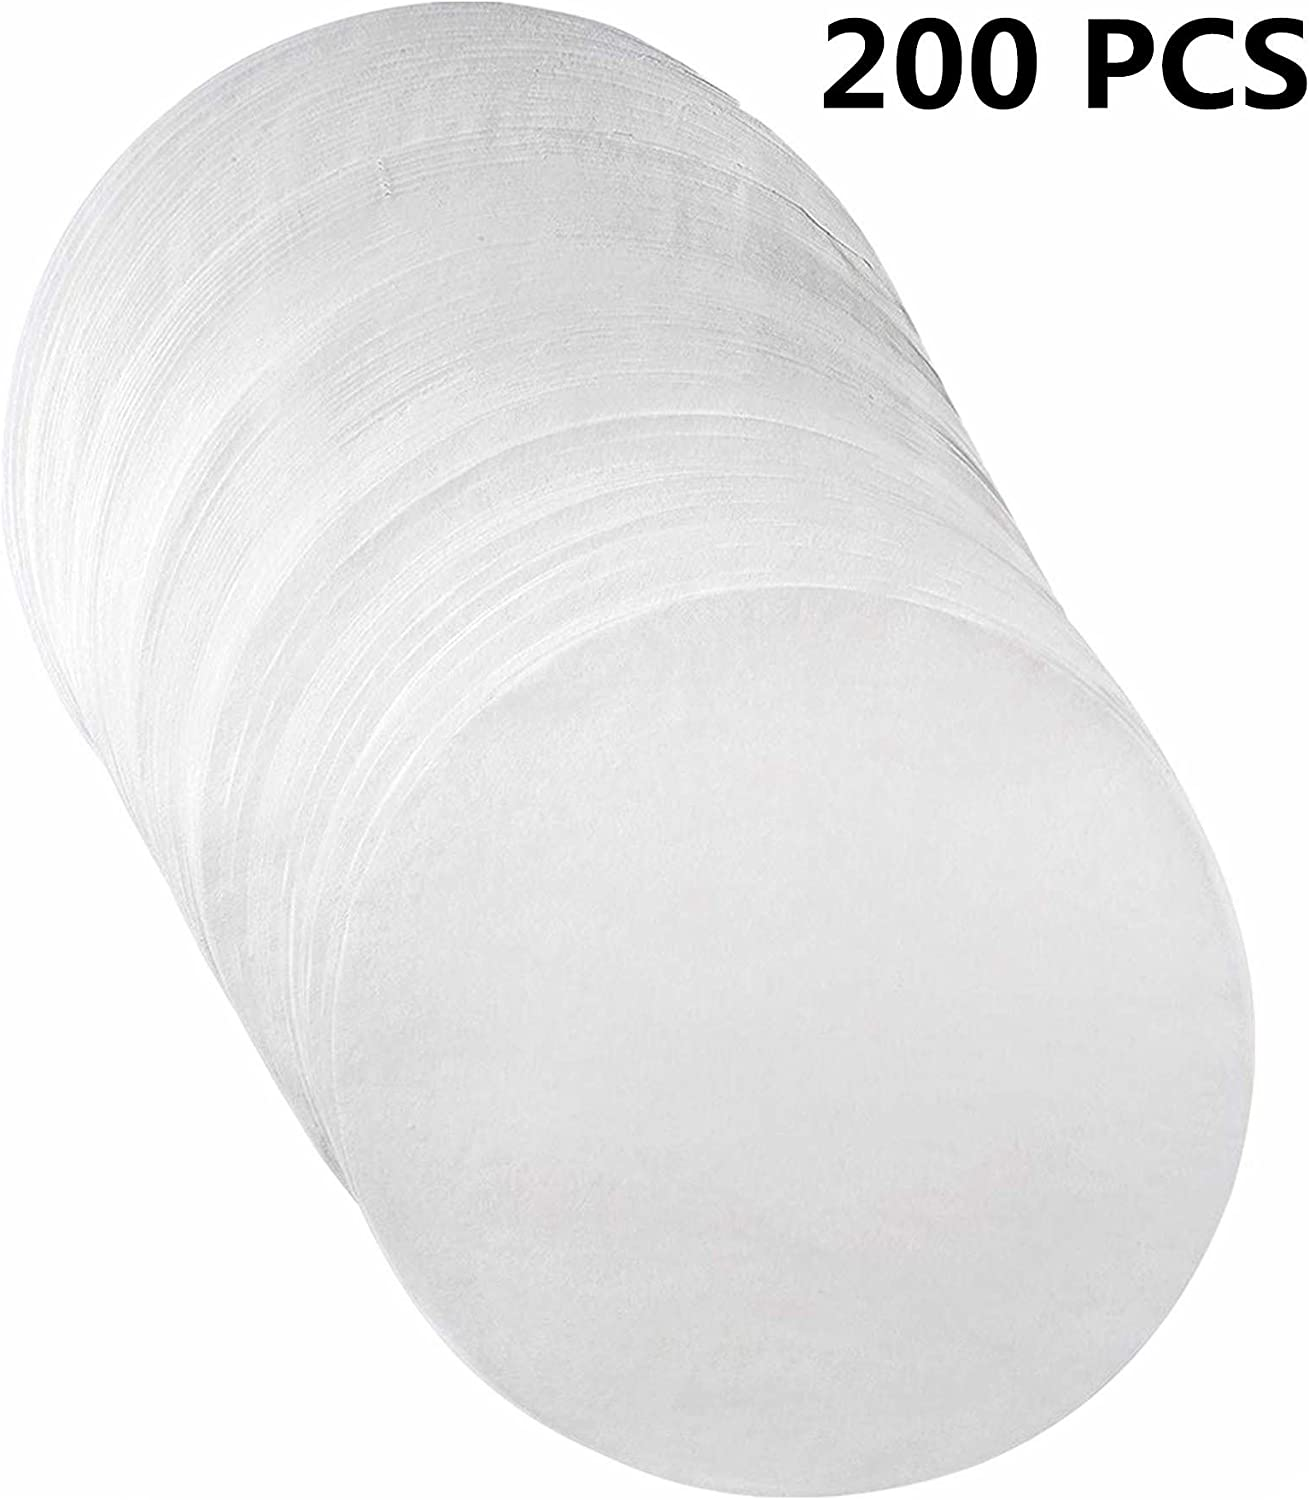 Parchment Paper Baking Circles - 6 inch - 200 Eco-Friendly Pack - Baking Paper Liners for Round Cake Pans Circle Cheesecake, Cooking, Air Fryer